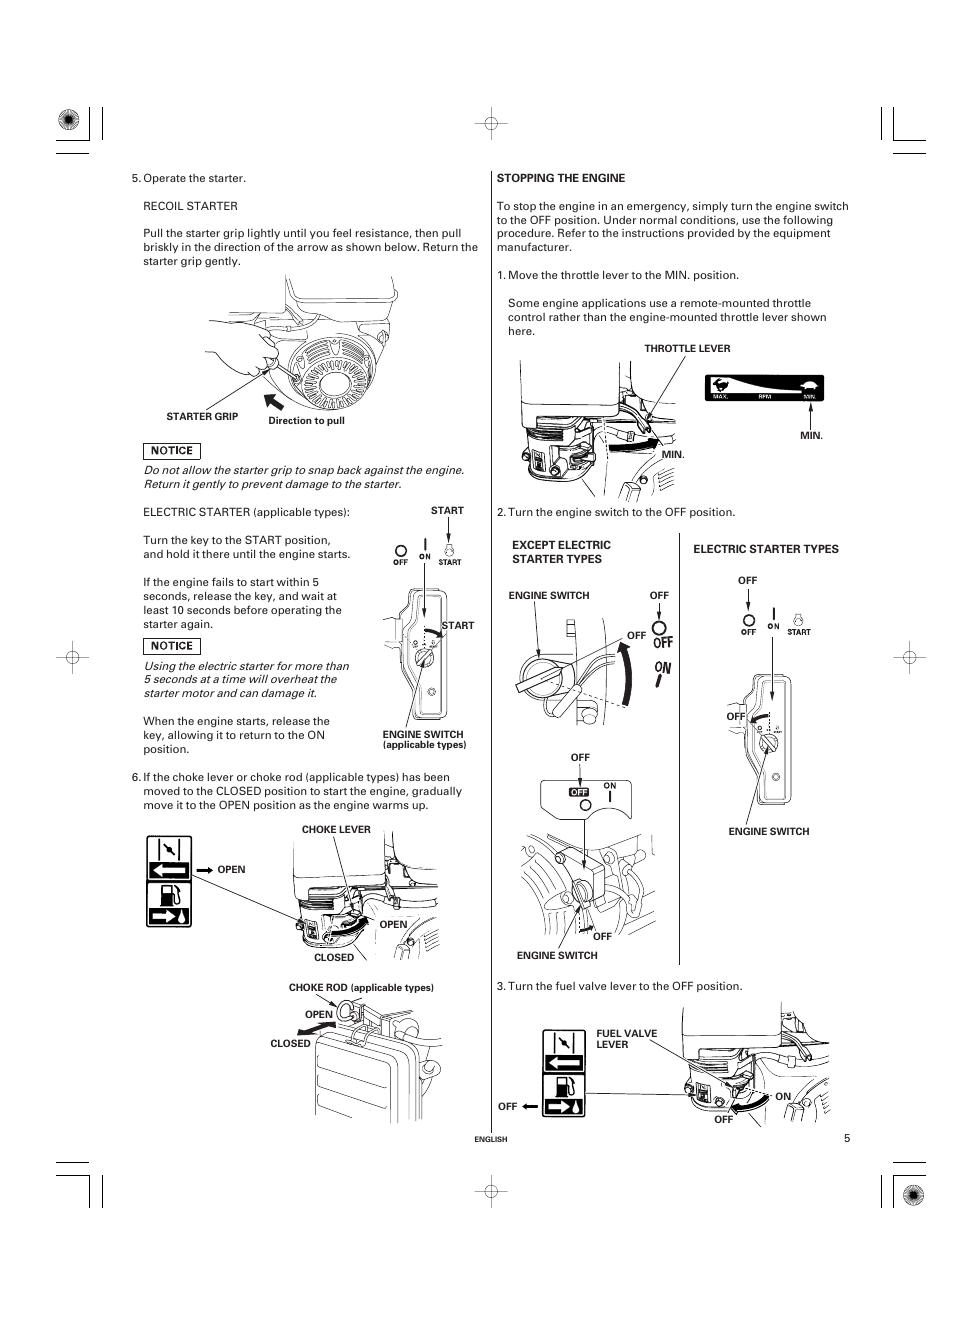 Stopping The Engine Honda Gx270 User Manual Page 5 60 16 Valve Diagram